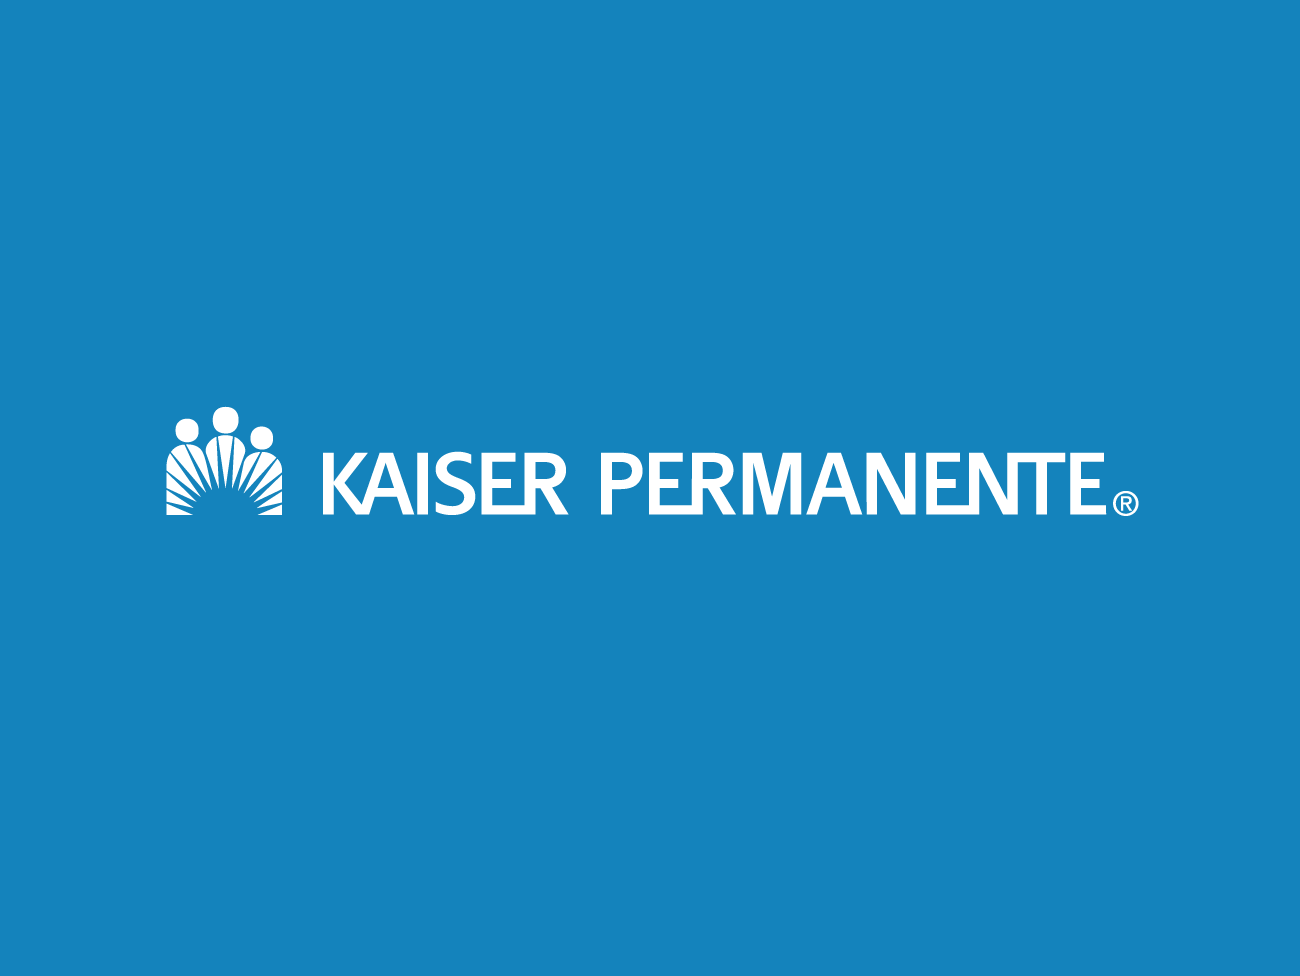 Kaiser Permanente and Coalition to begin negotiations